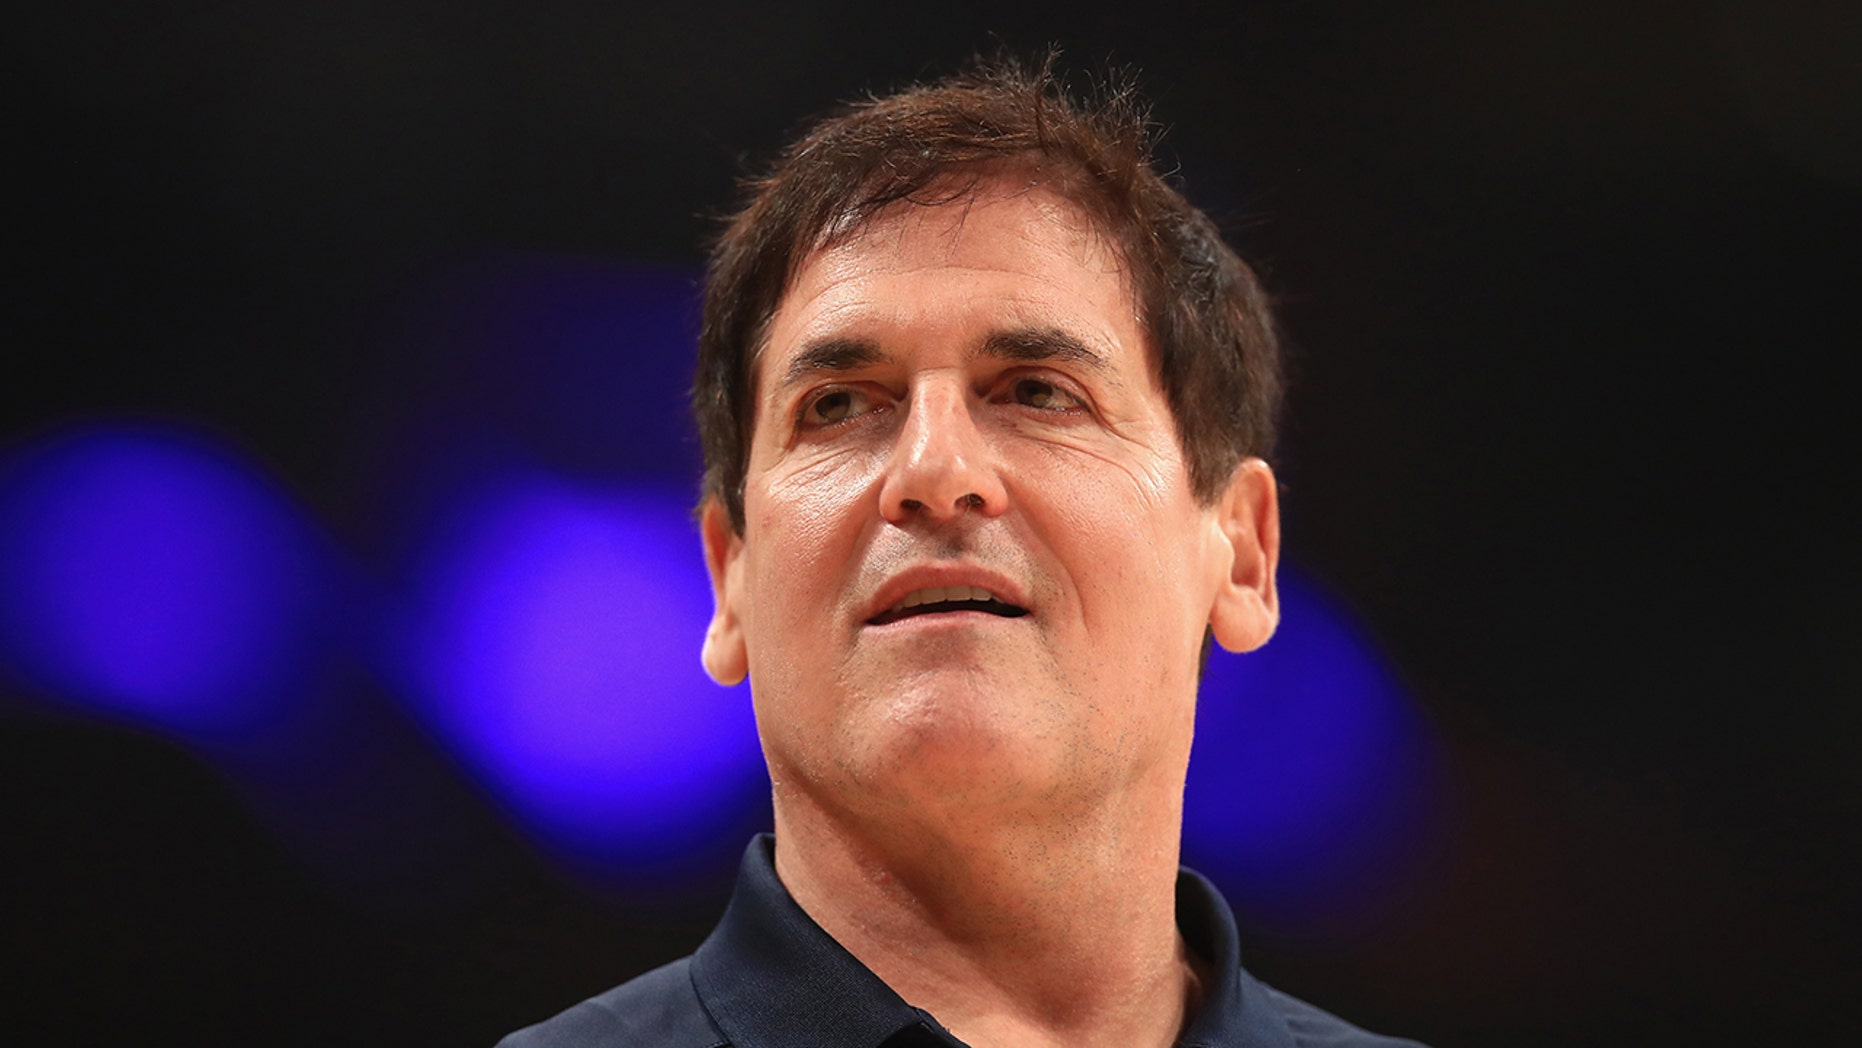 Owner Mark Cuban of the Dallas Mavericks looks on during the first half of a game against the Los Angeles Lakers at Staples Center in Los Angeles last October. (Photo by Sean M. Haffey/Getty Images)